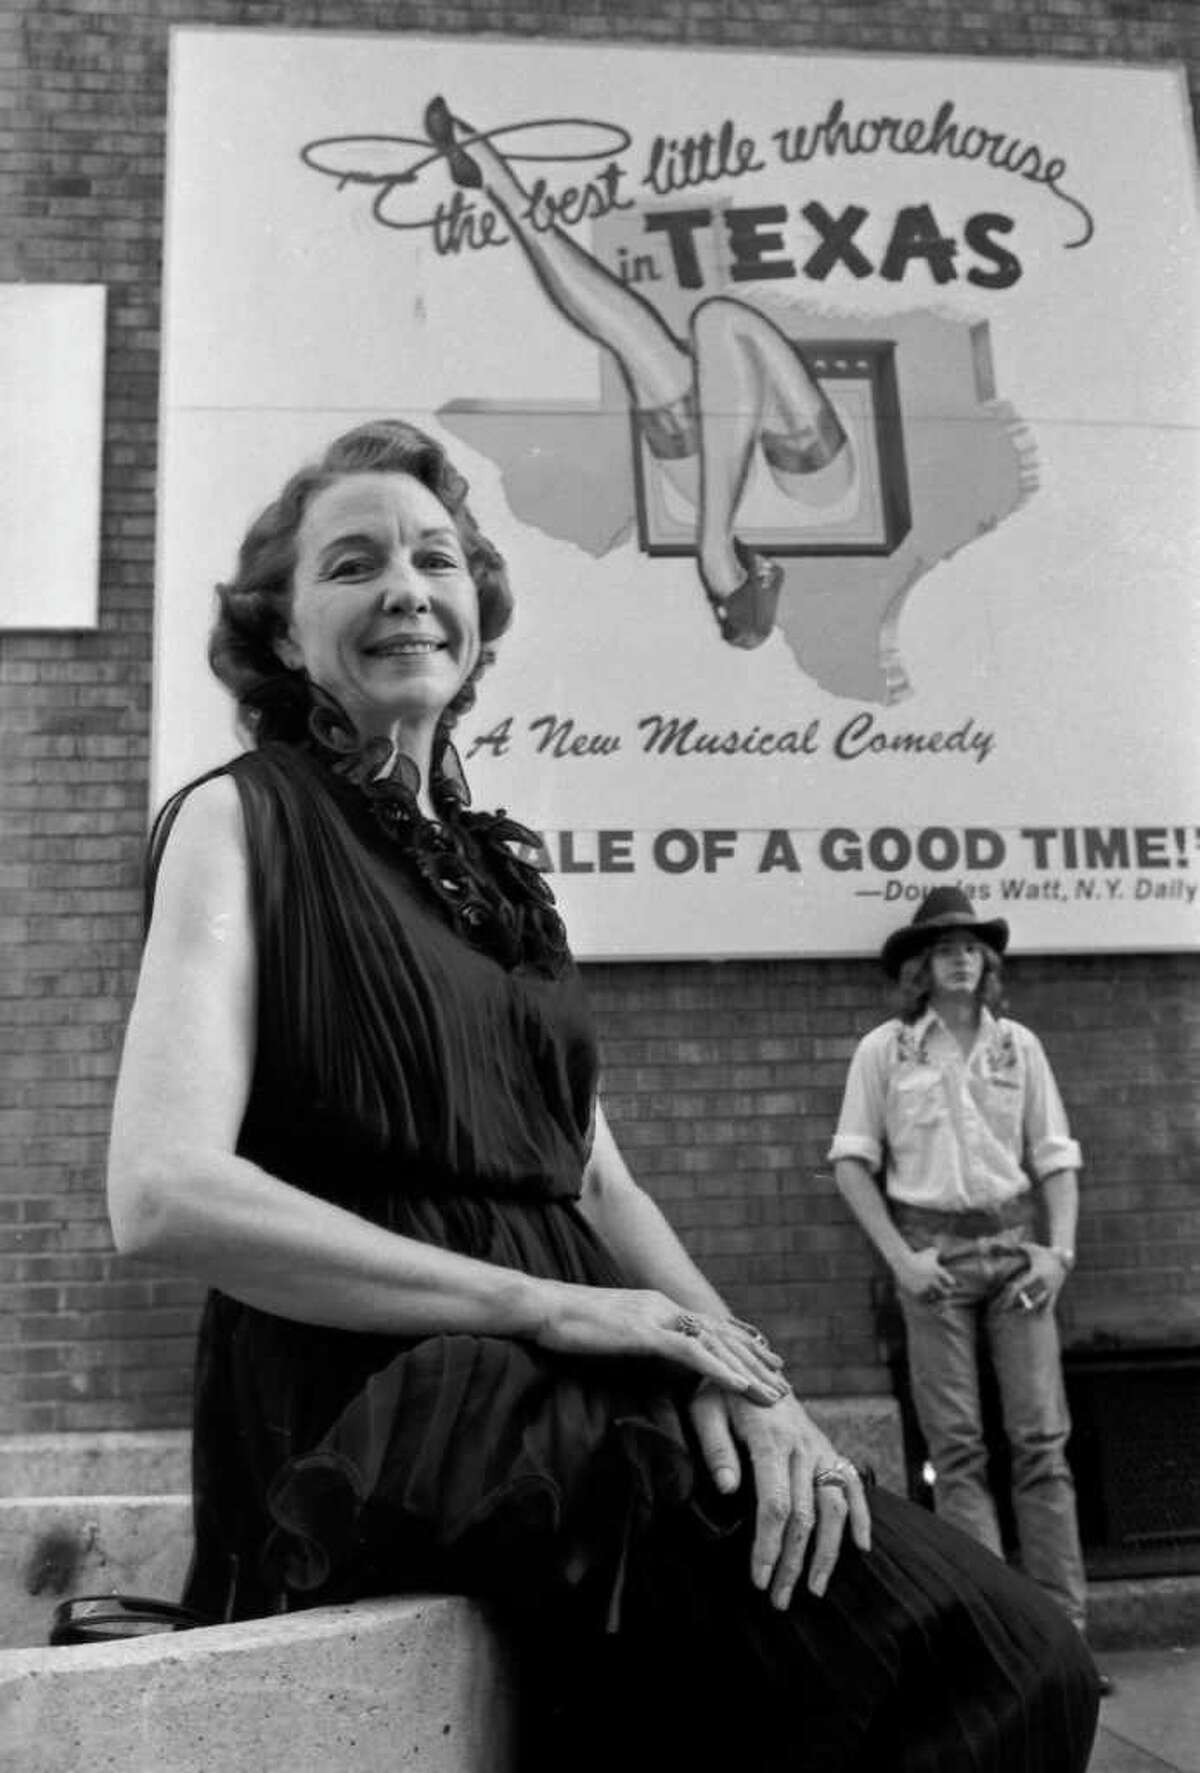 This 1978 photo shows Edna Milton Chadwell posing outside of the Broadway Theater where she was appearing in the musical based on her past,